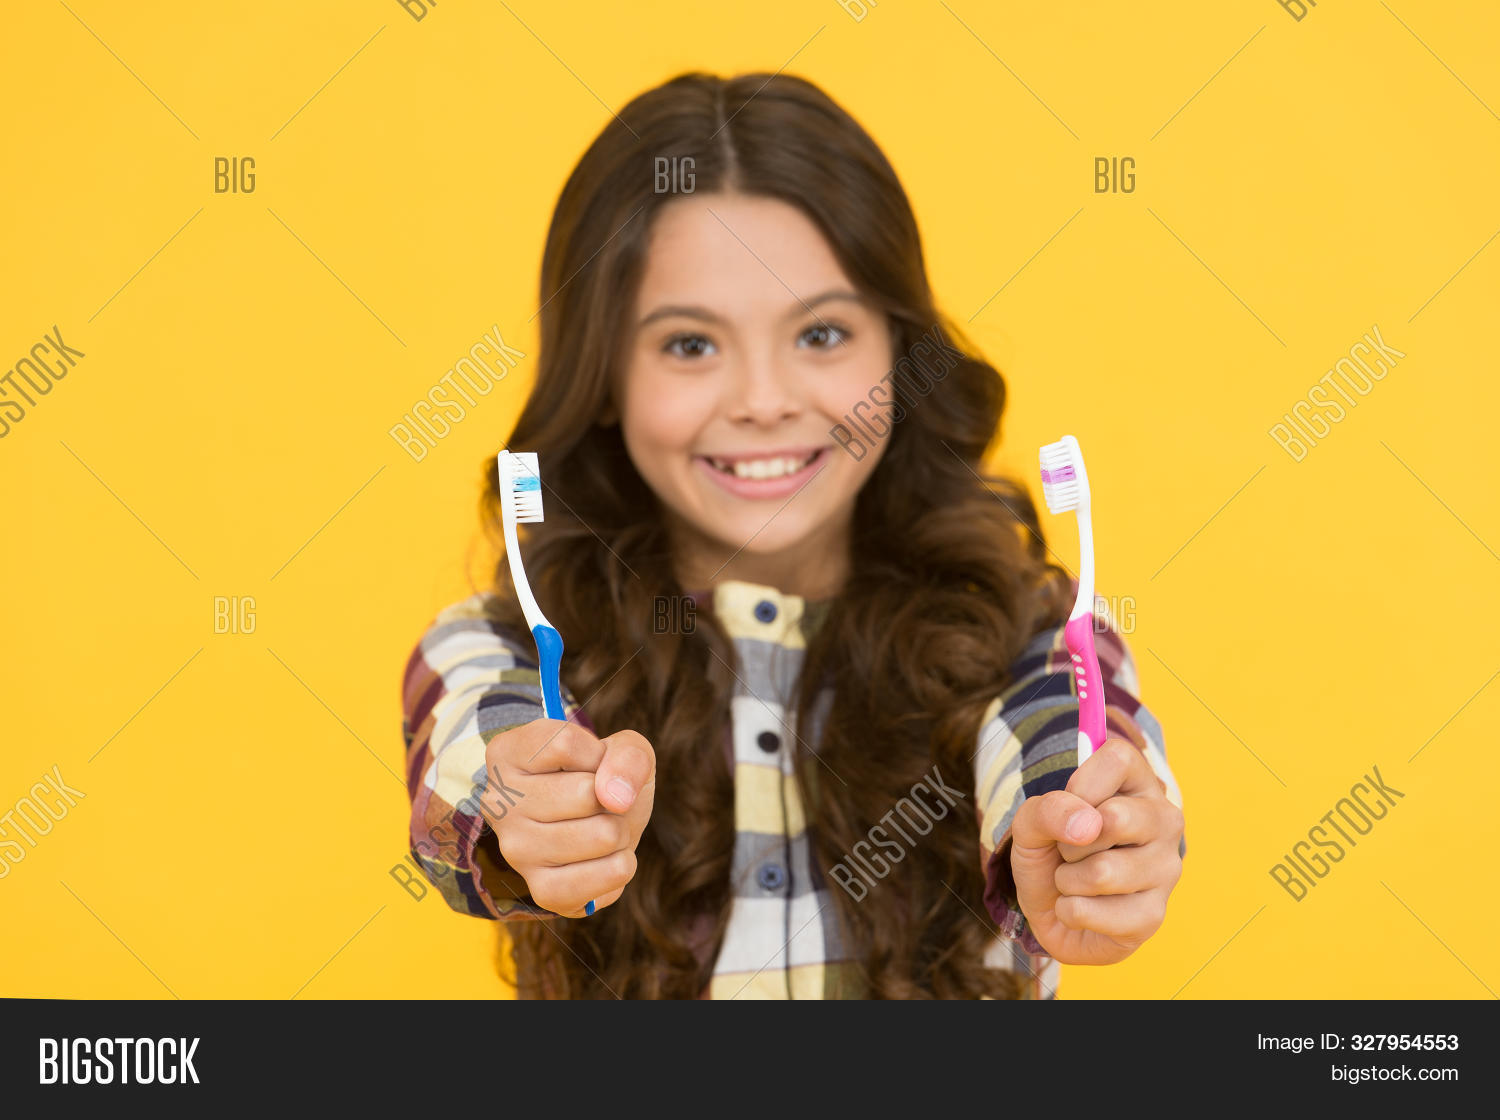 adorable,baby,background,beauty,brunette,brush,care,caries,caucasian,child,childhood,clean,cute,daily,dental,dentist,fresh,girl,happy,health,healthcare,healthy,hygiene,kid,lifestyle,little,medicine,morning,mouth,oral,paste,procedure,routine,small,smile,teeth,tooth,toothbrush,toothbrushes,toothpaste,treatment,wellbeing,white,whitening,yellow